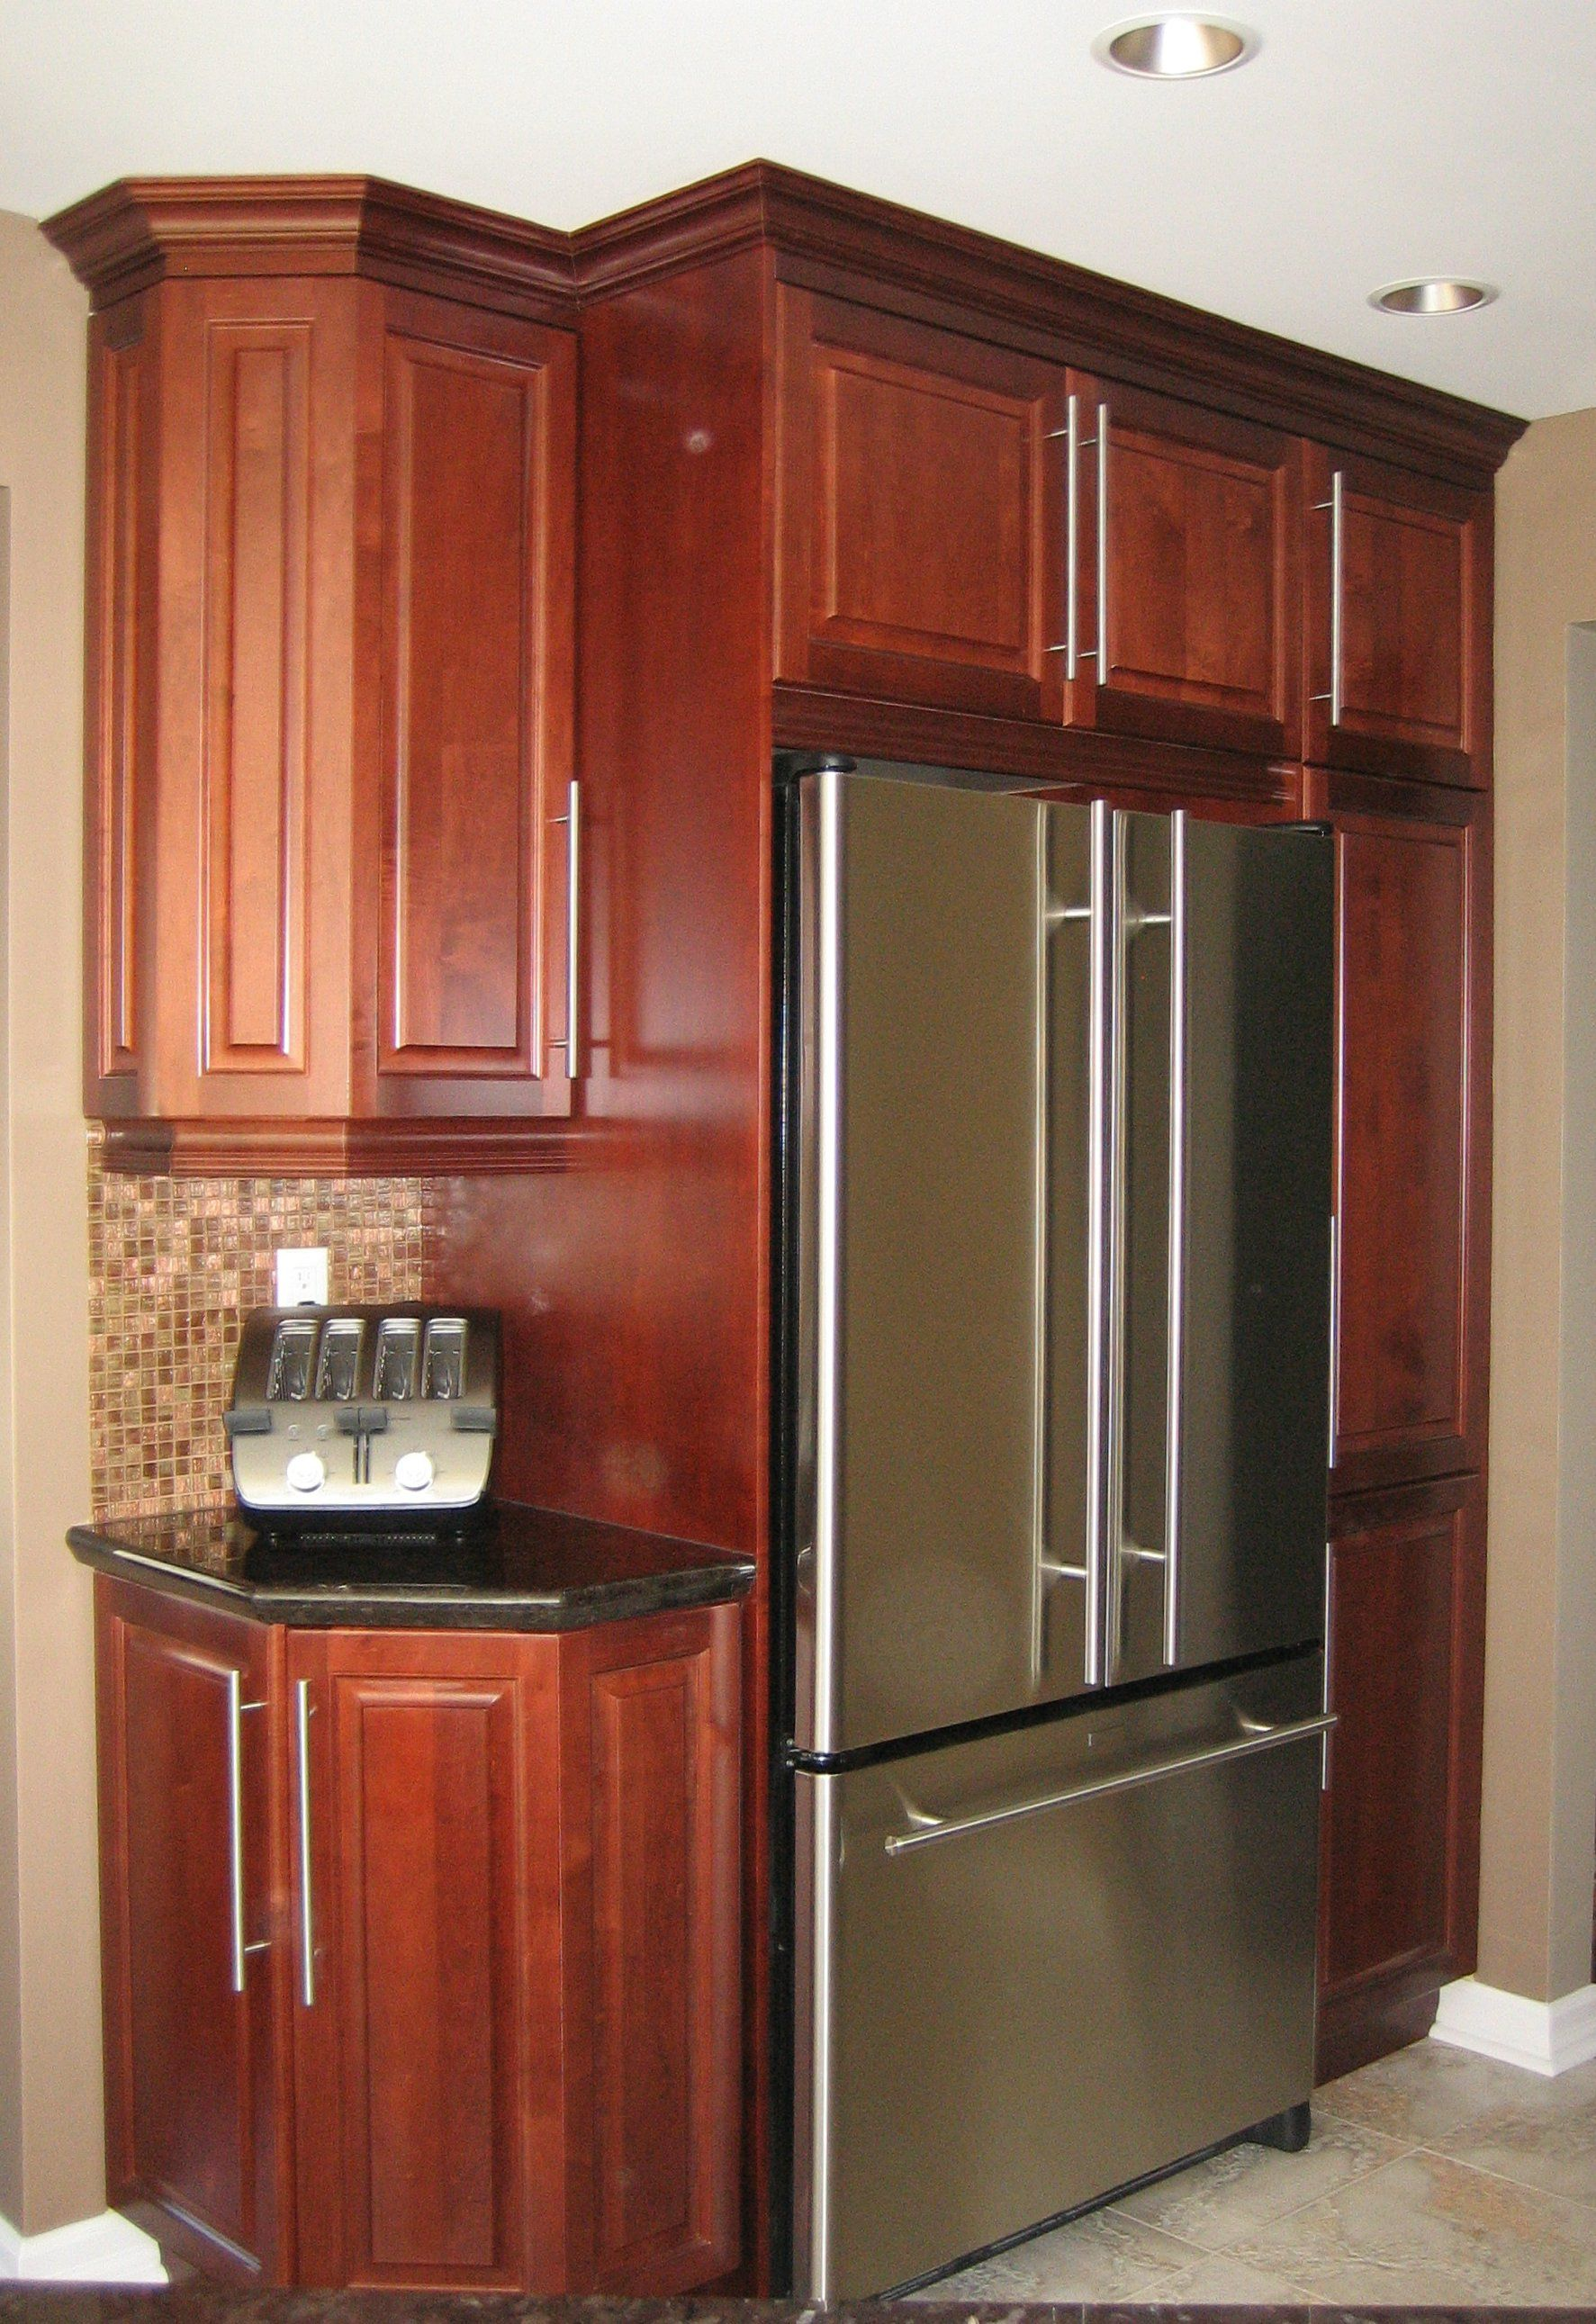 Pantry Built In Fridge And Room For Toaster On The Angled Base Kitchen Cabinets Kitchen Home Decor